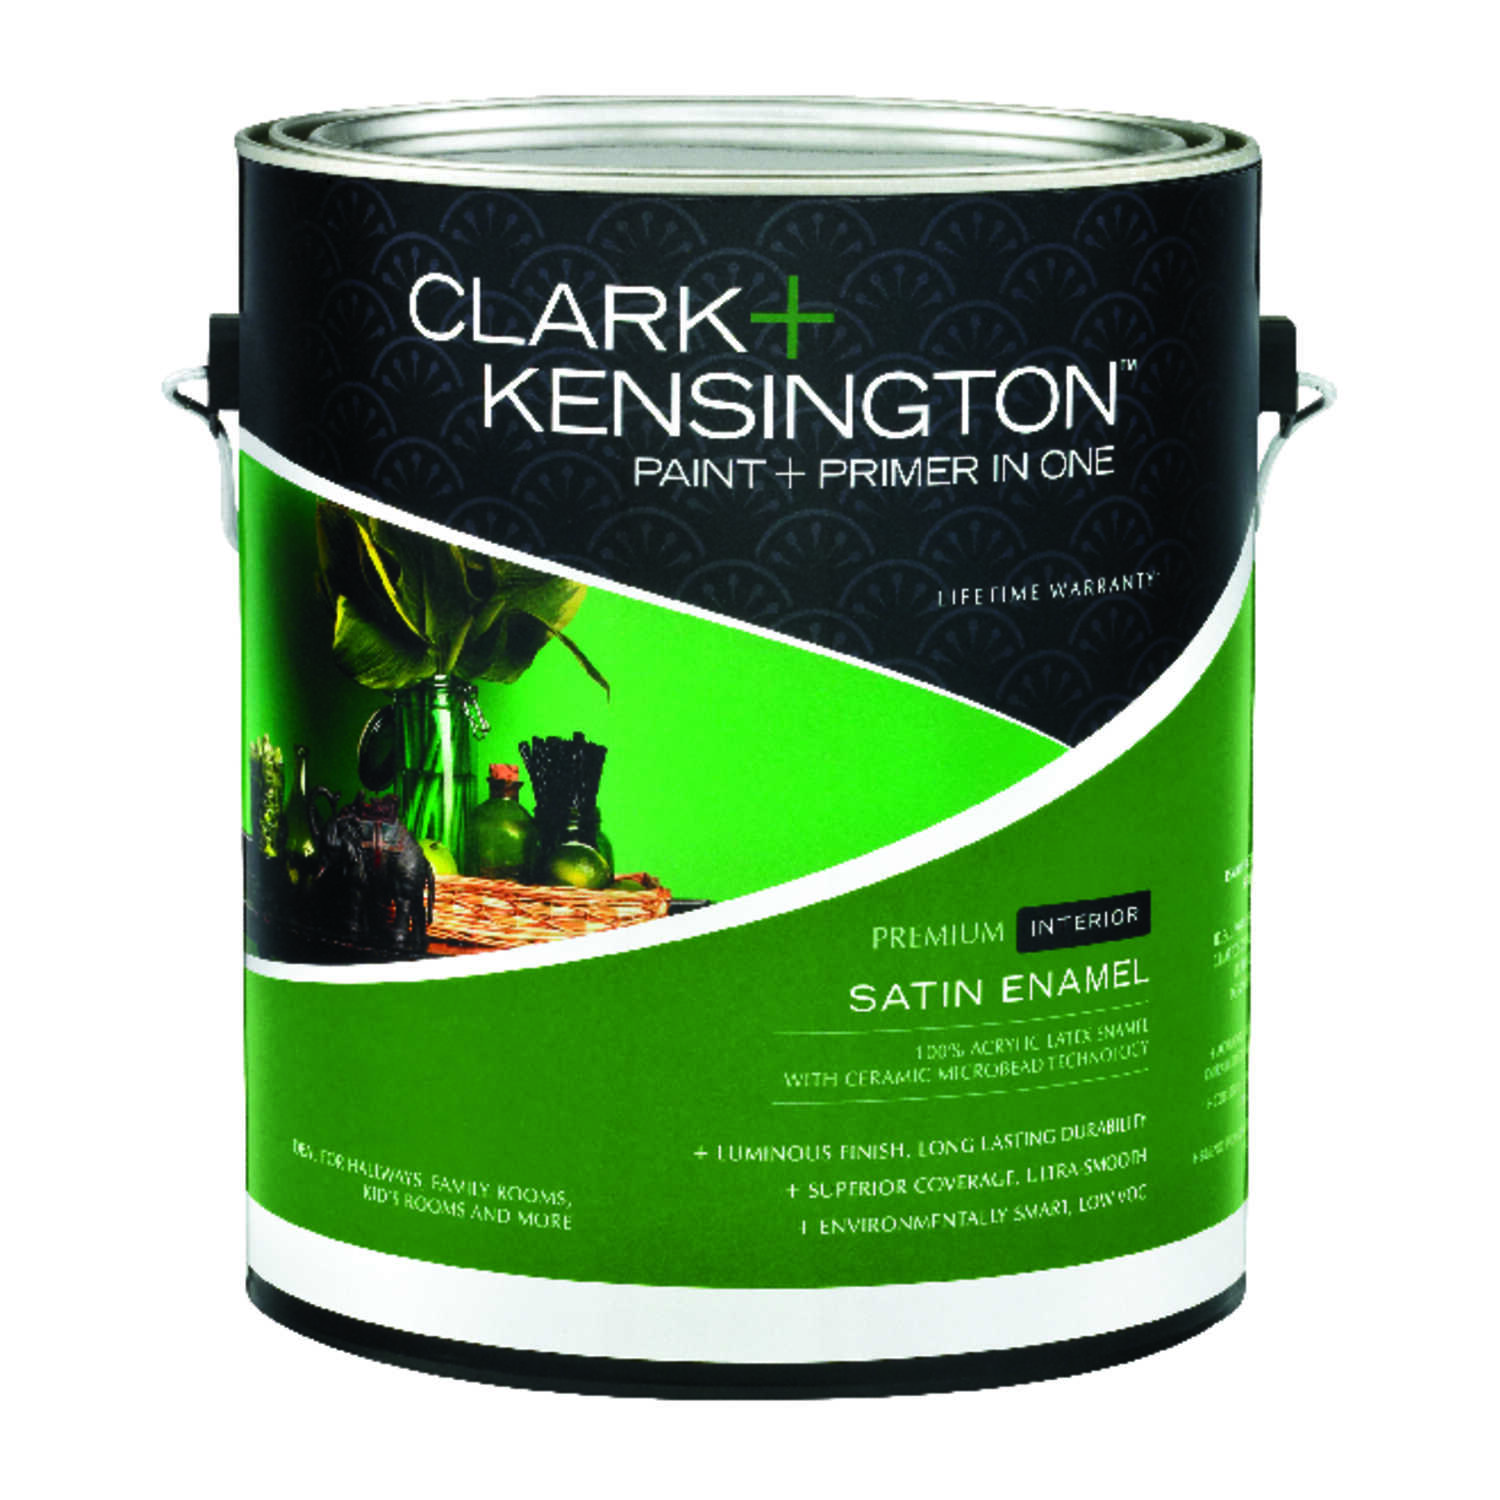 Clark+Kensington  Satin  Designer White  Acrylic Latex  1 gal. Paint and Primer